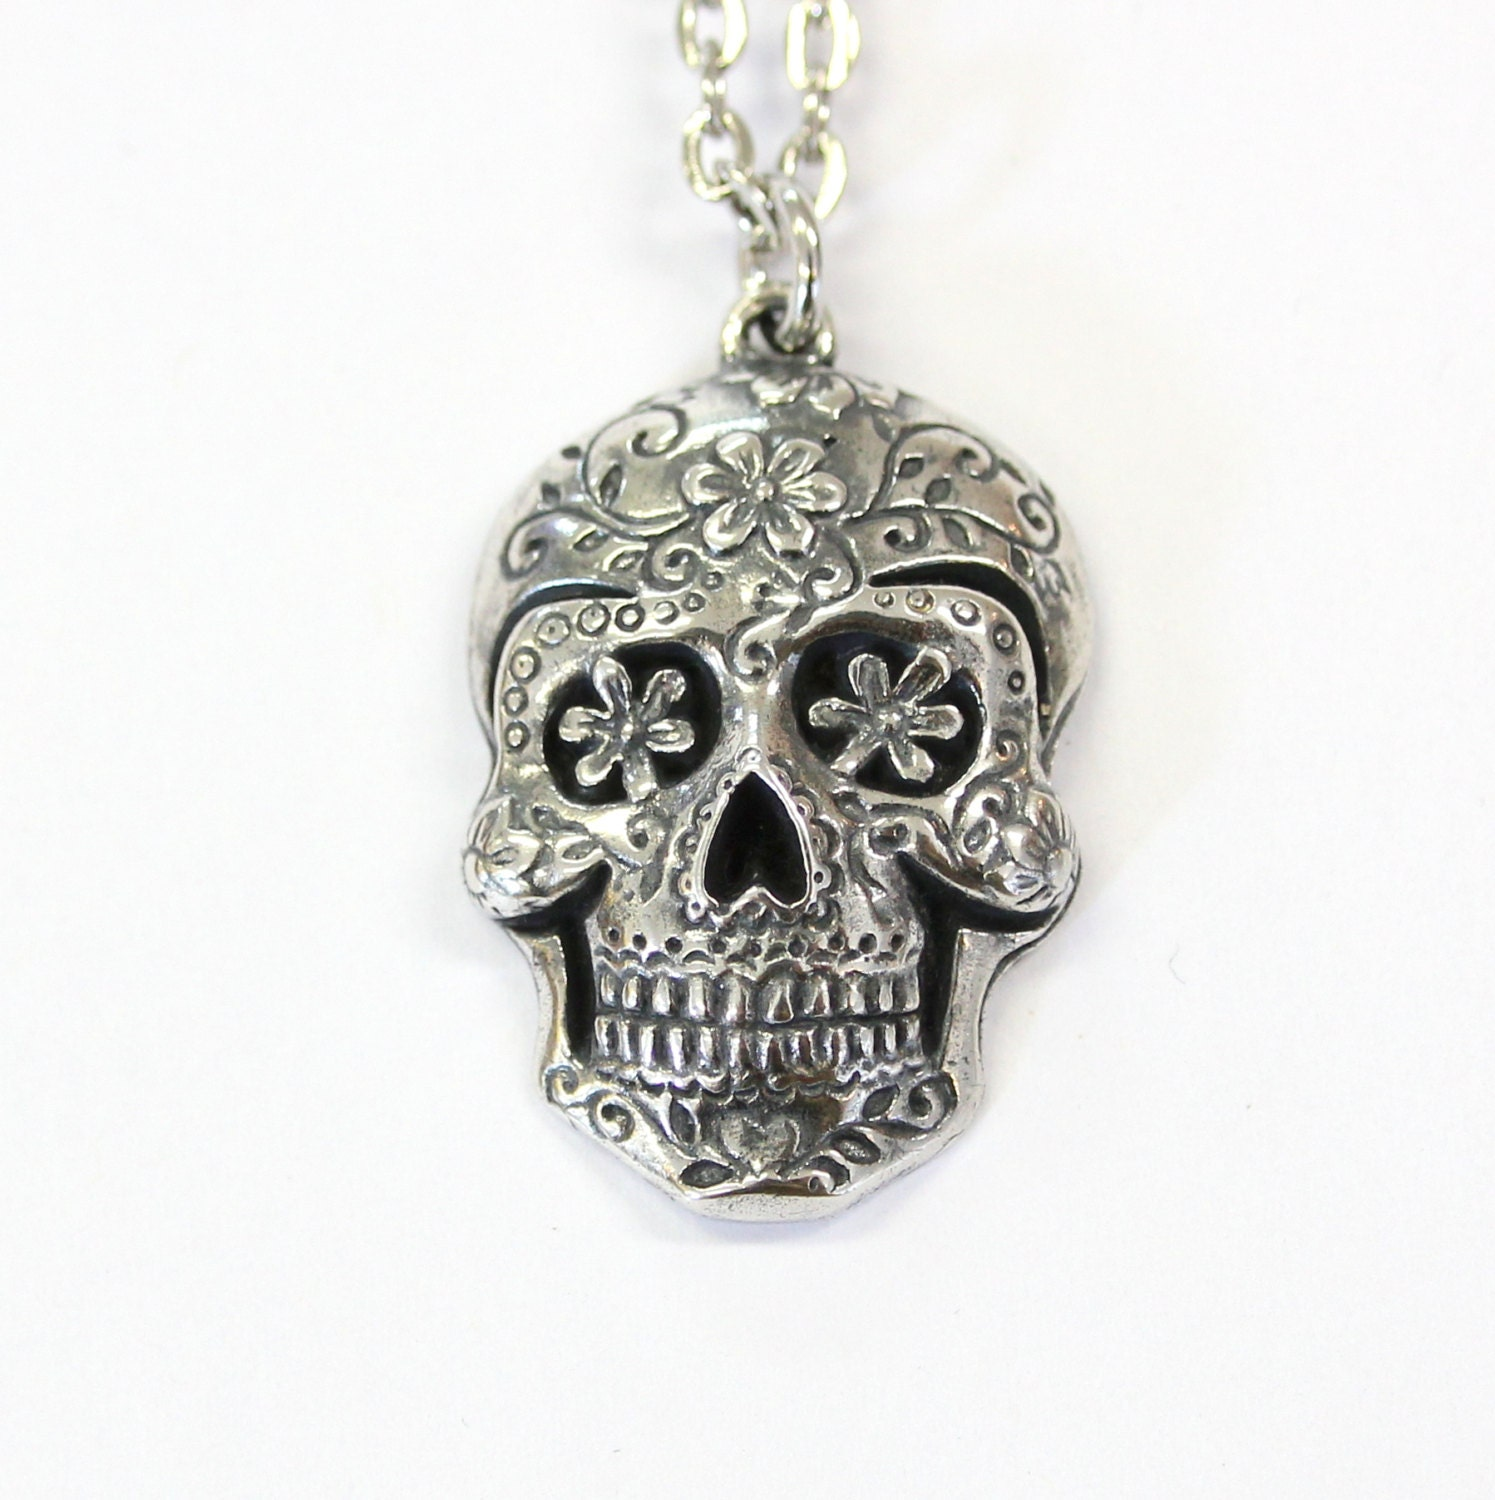 sugar image necklace heart pendant skull eyes controse